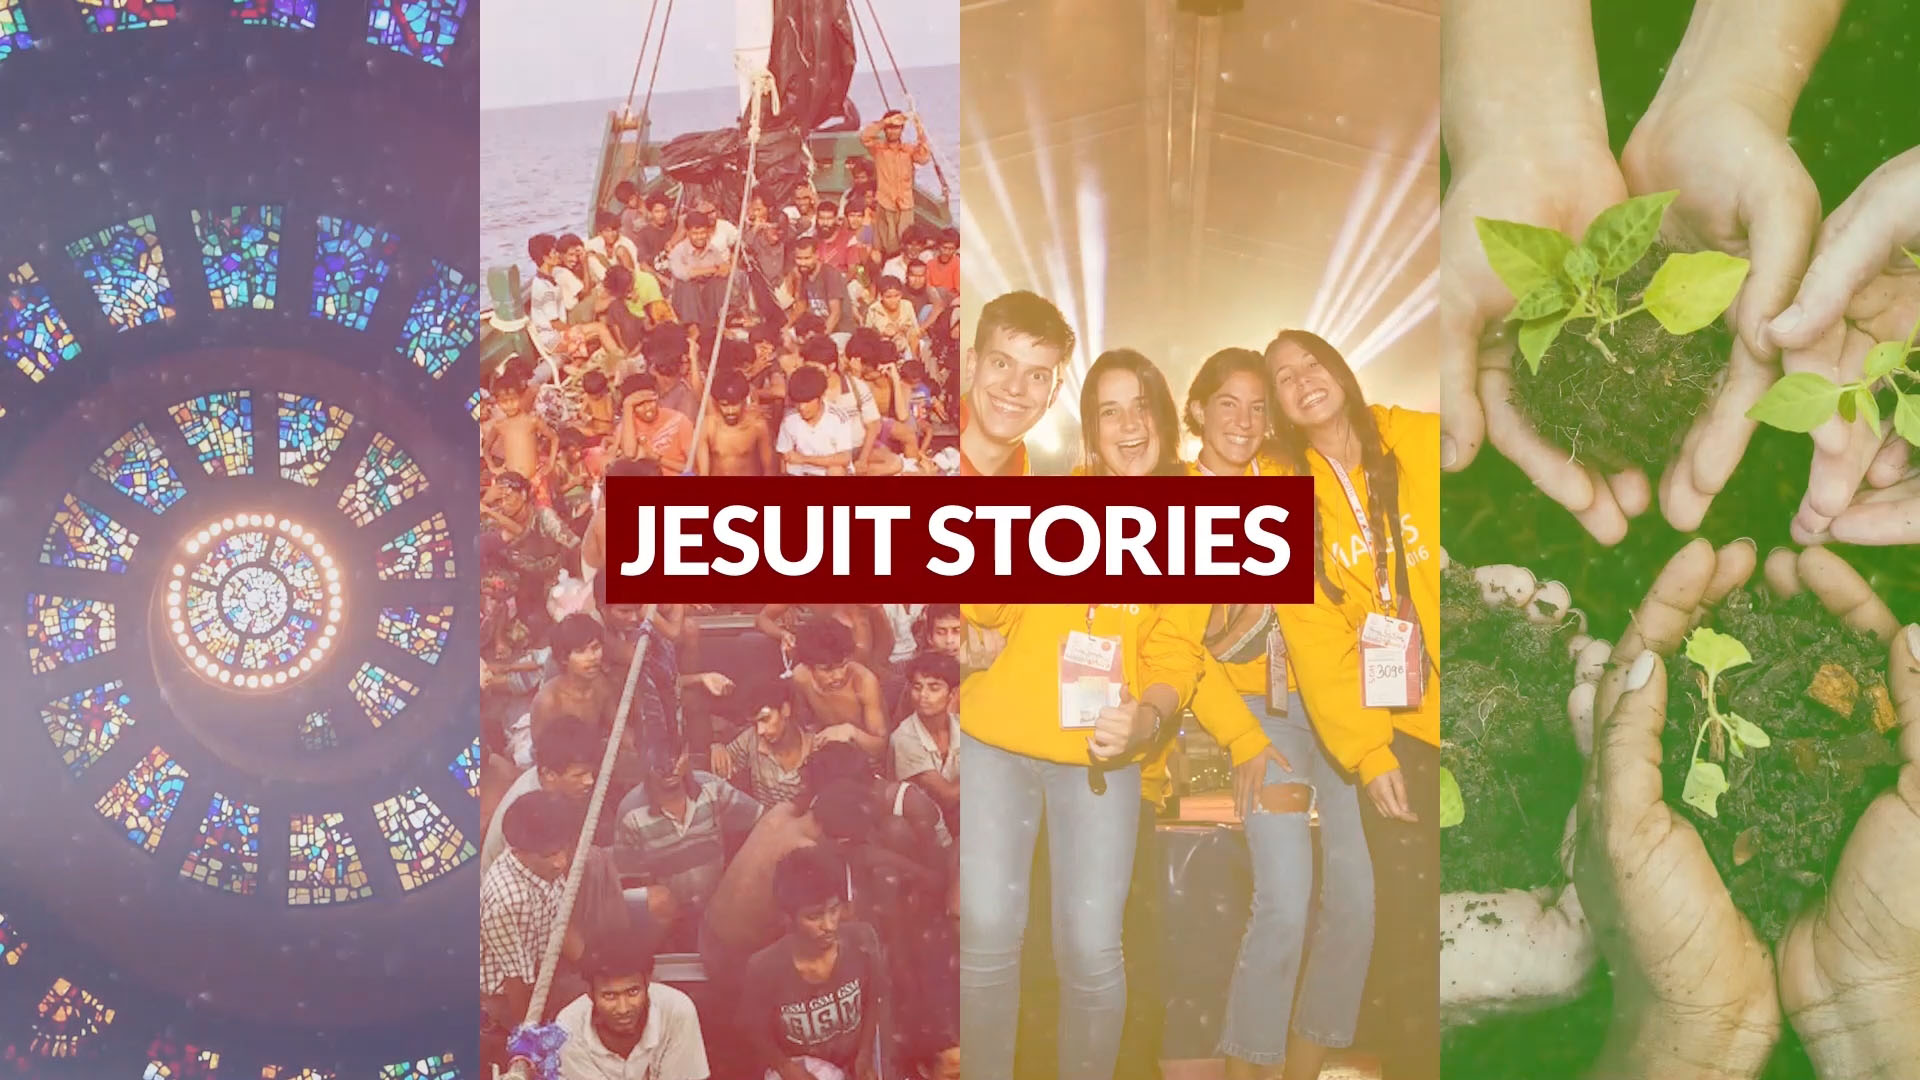 How Ignatian meditation became a YouTube hit. Watch Jesuit Stories